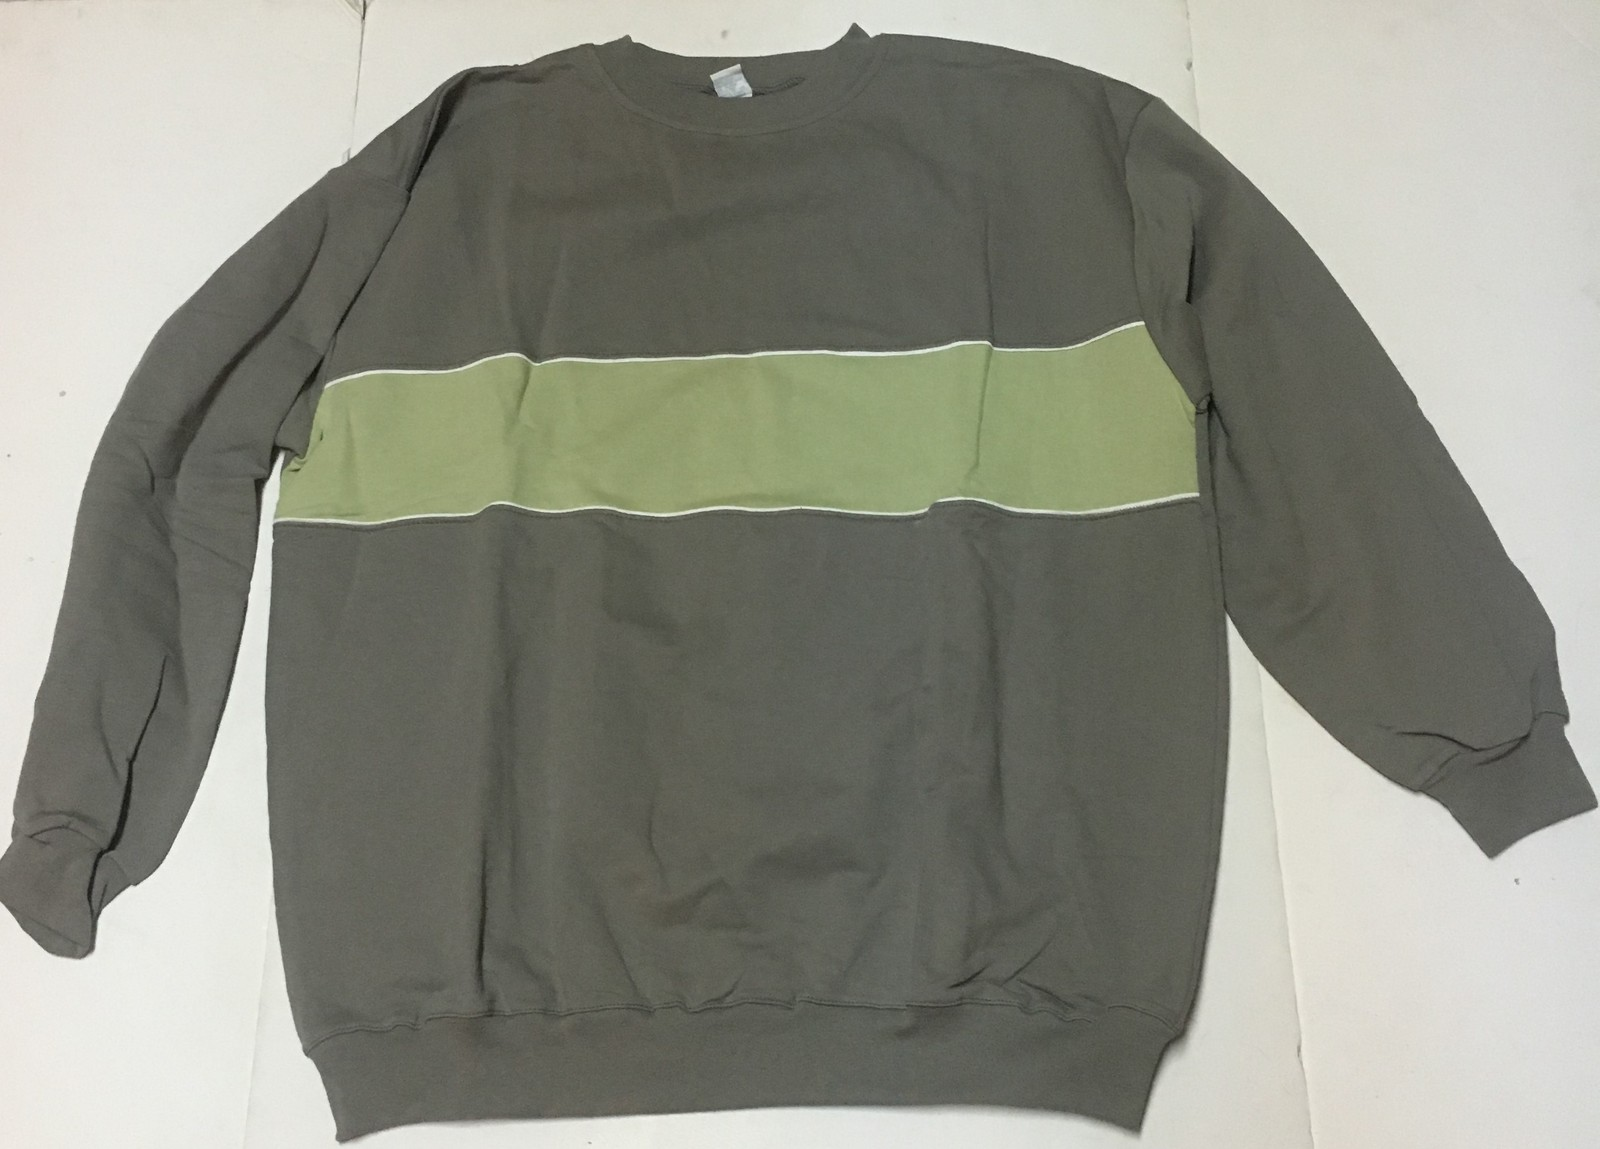 Comfy Cotton Baggy Sweatshirt XL Gray & Green